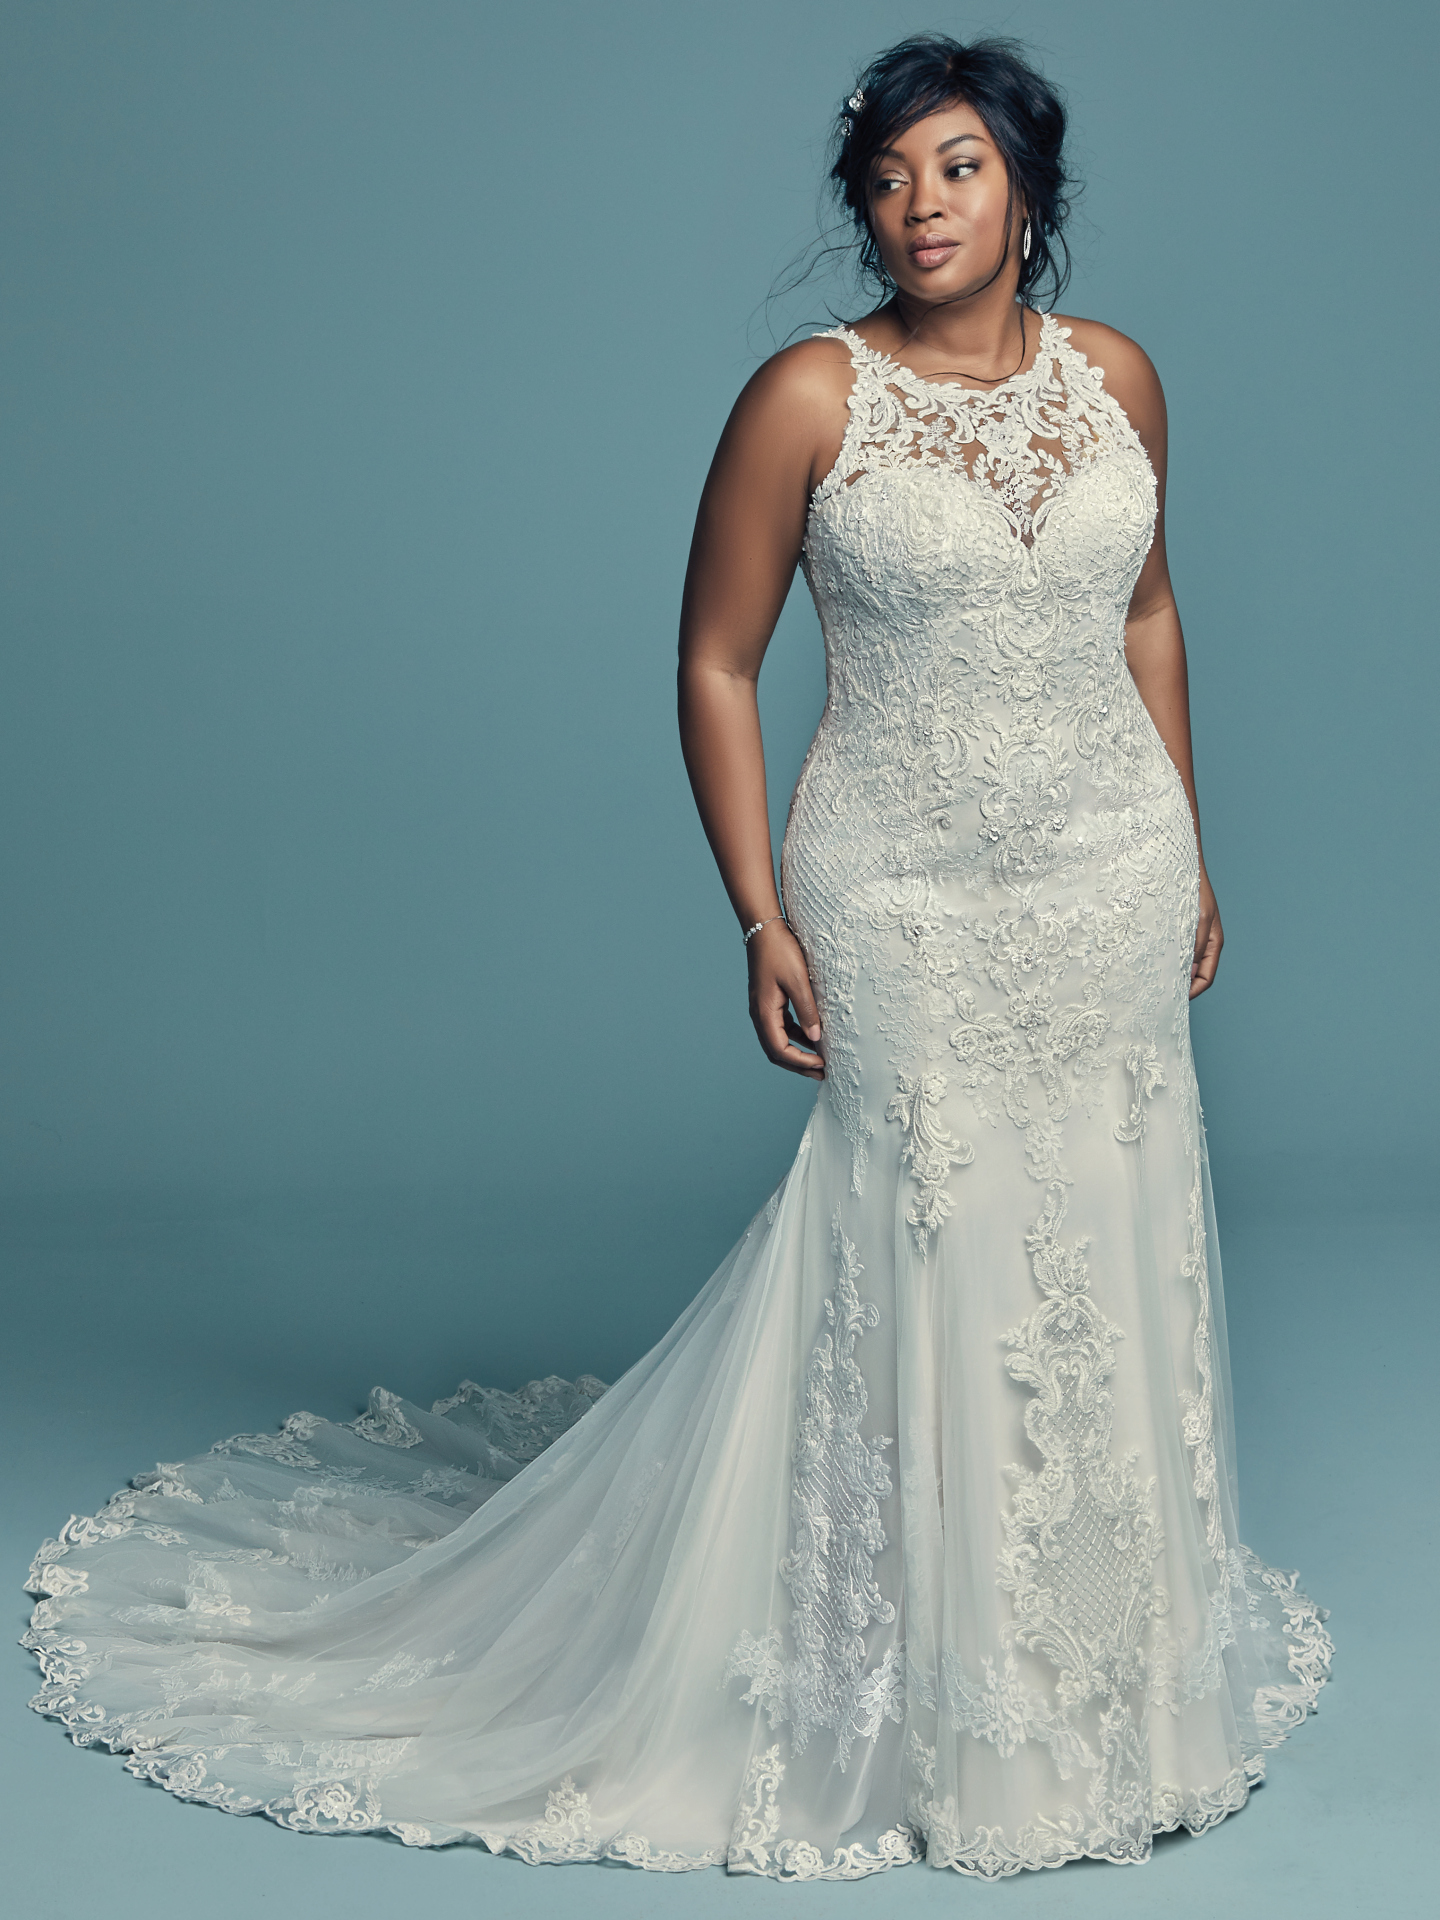 a plus size wedding dress by Maggie Sotero